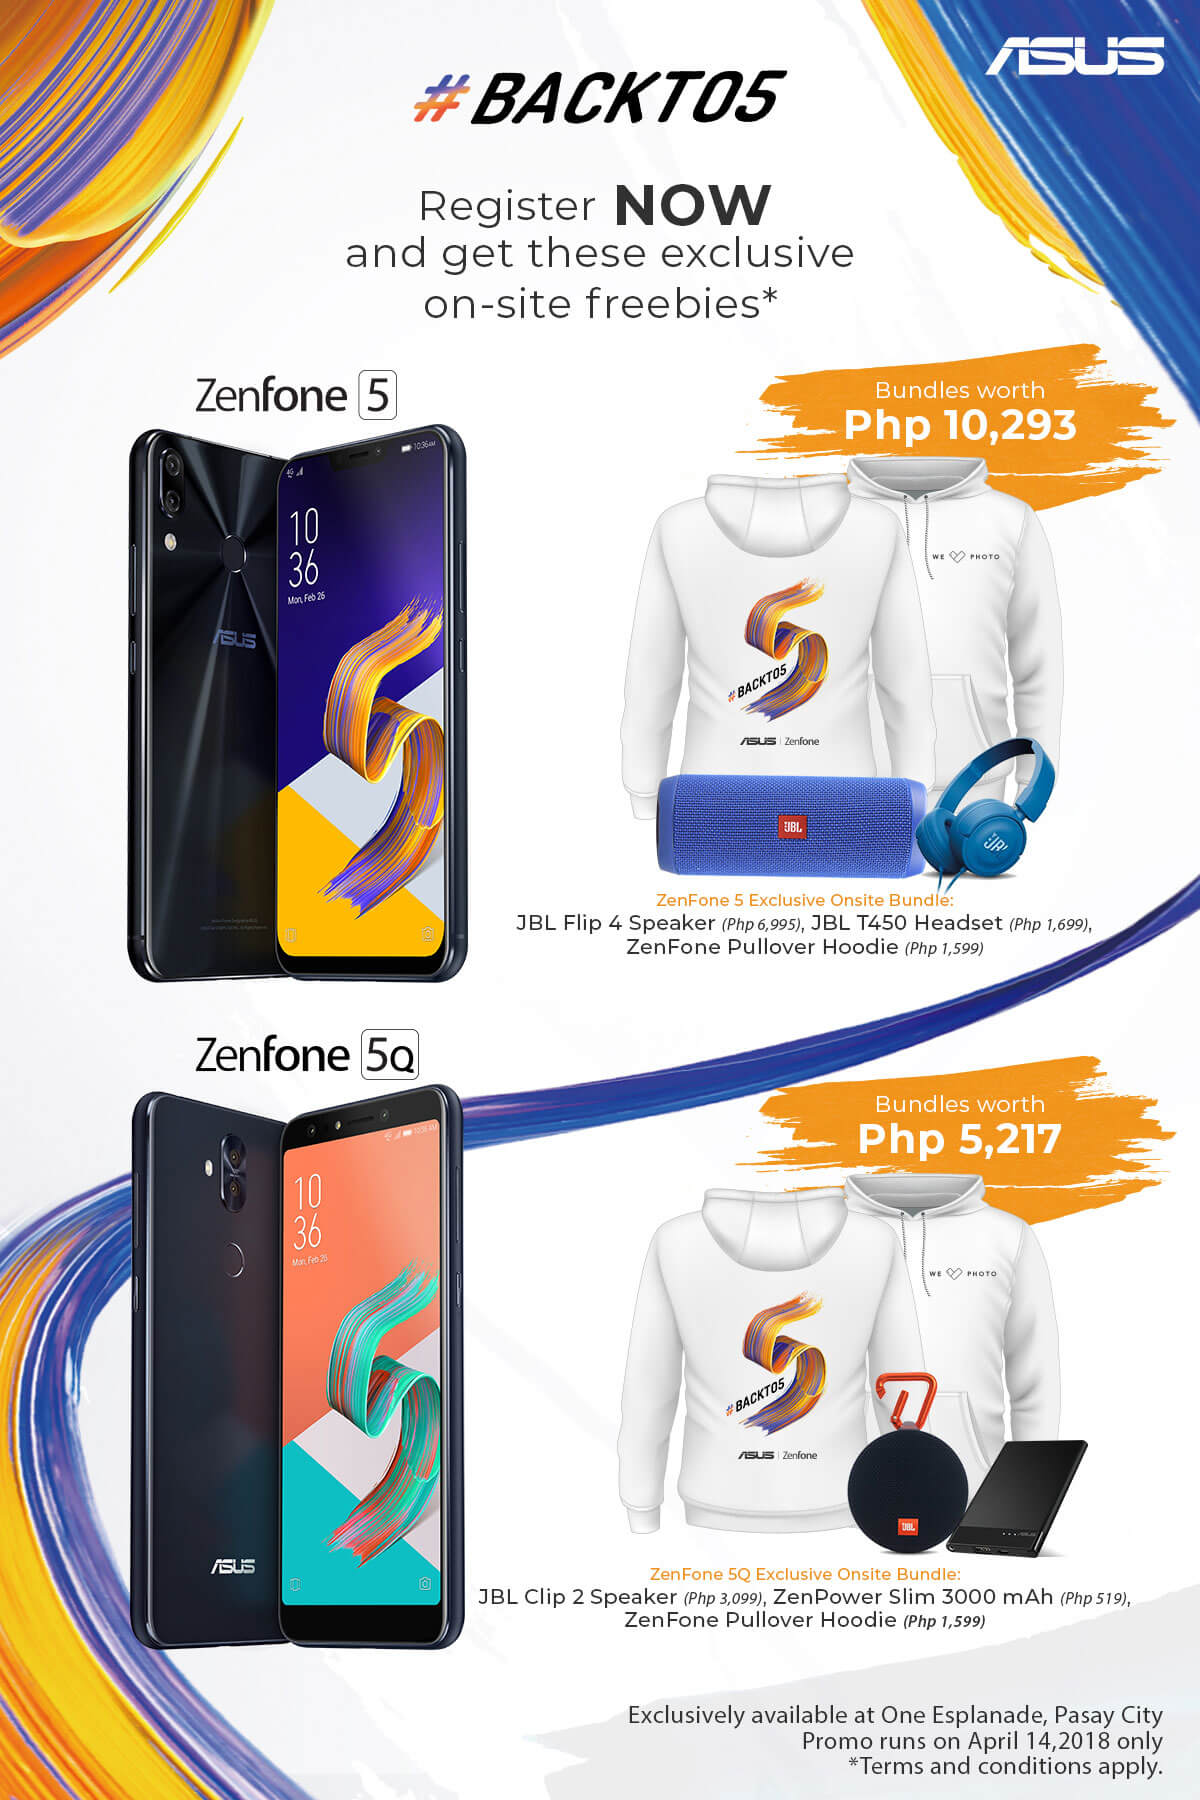 Final FA for Onsite Selling 1 - Get up to PhP10,000 Worth of Freebies When You Buy a Zenfone 5 Series Smartphone on Launch